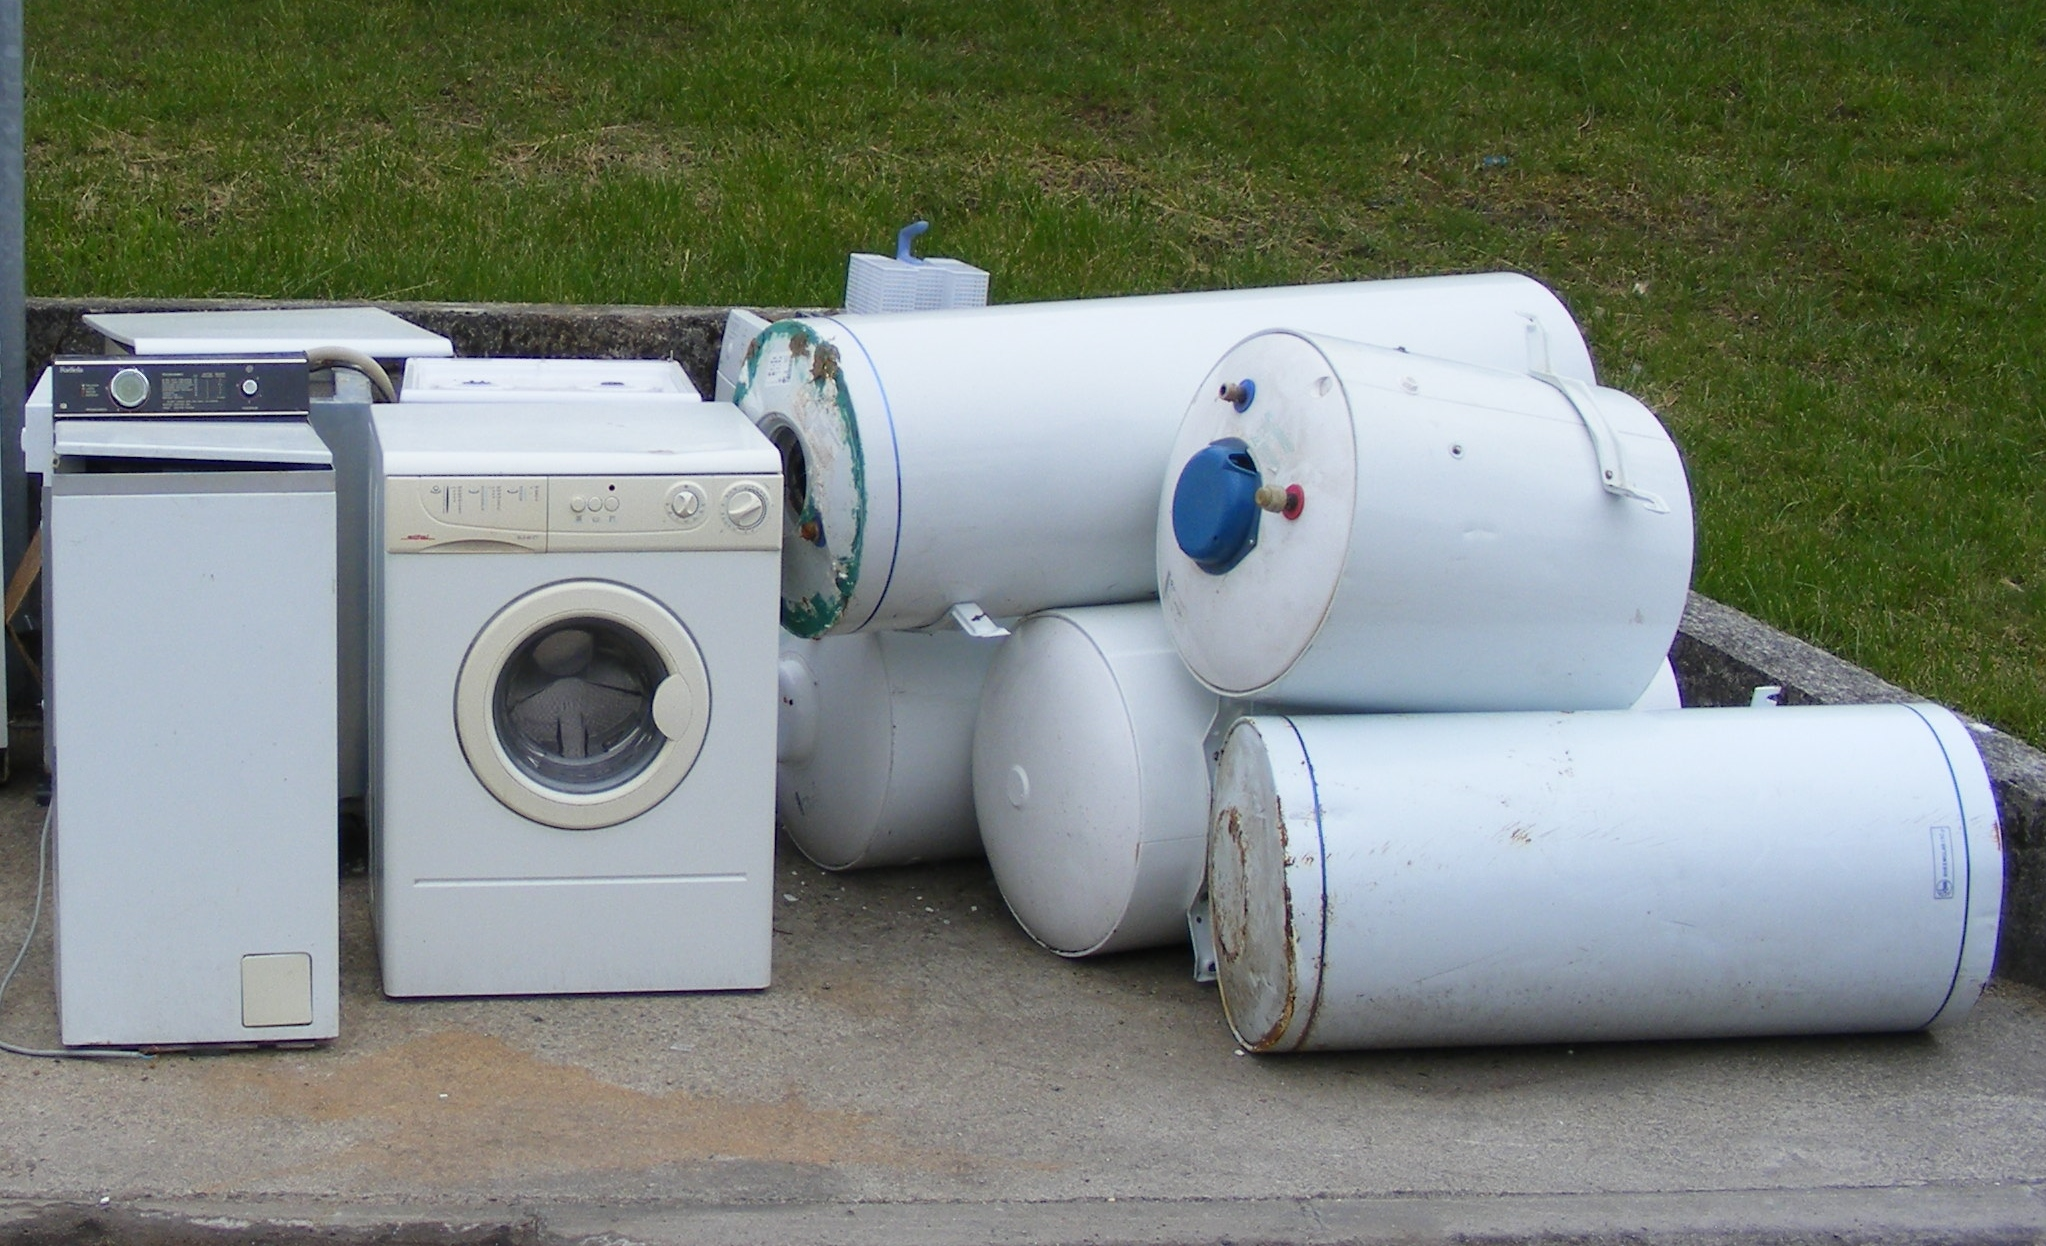 The Unavoidable Impermanence of Consumer Durables